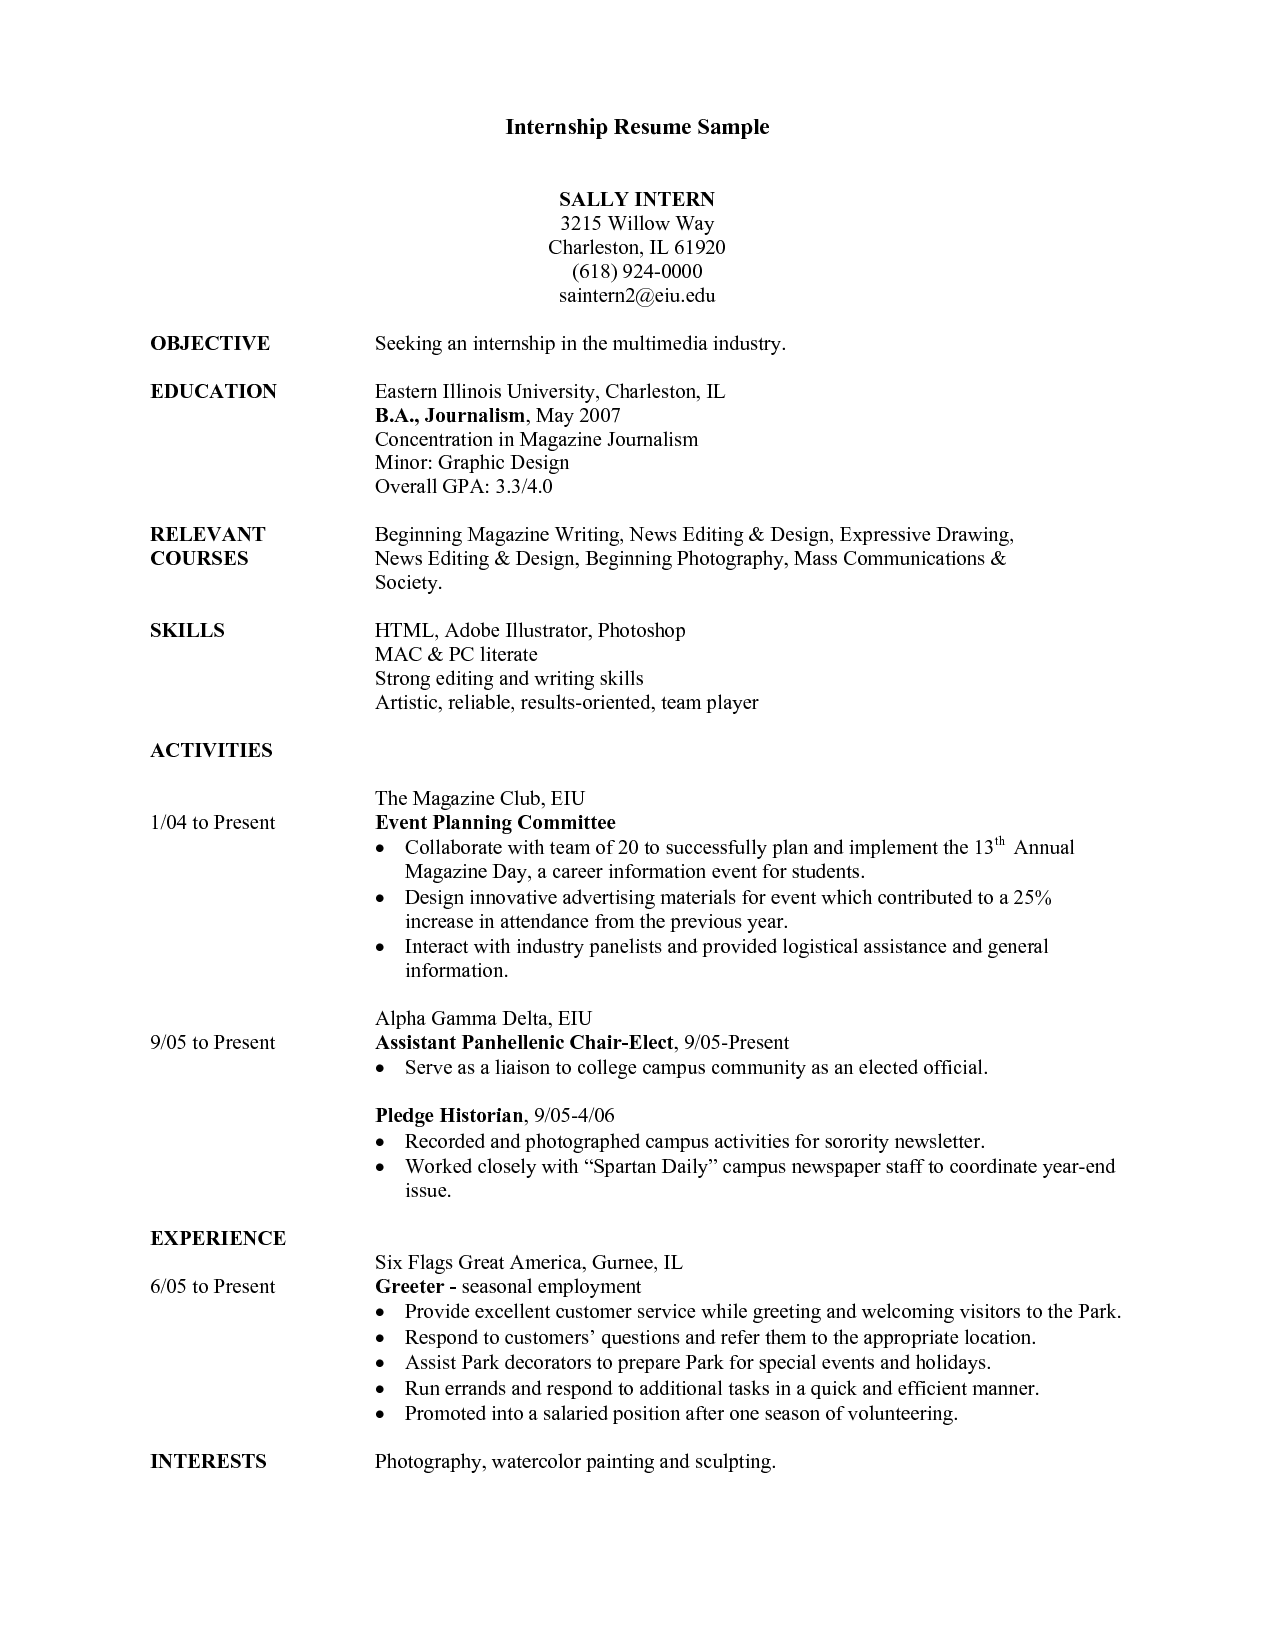 sample internship cover letter for college students